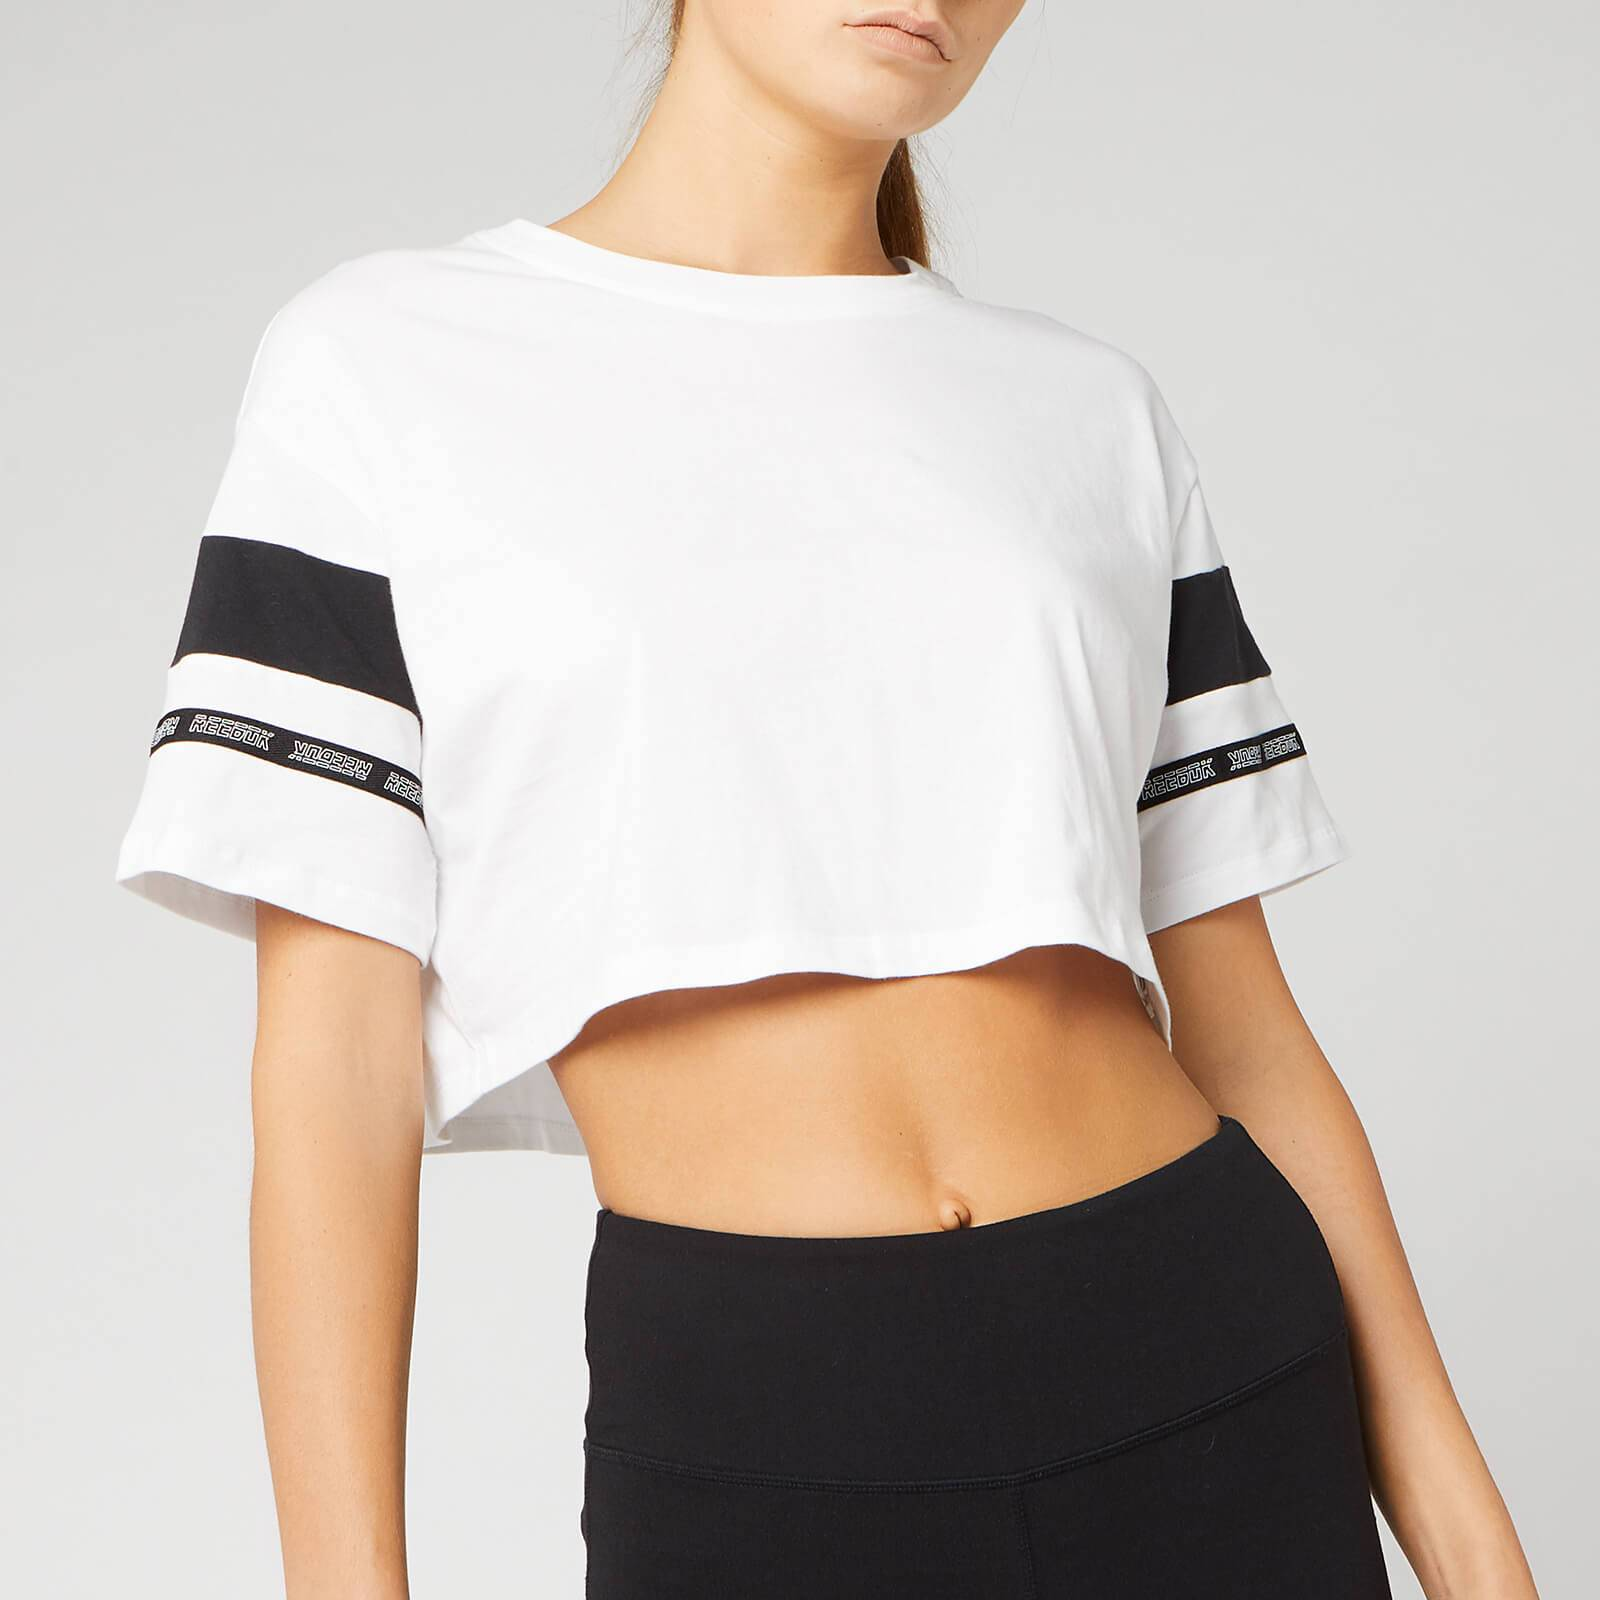 Reebok Women's WOR MYT Solid Cropped Short Sleeve T-Shirt - White - L - White